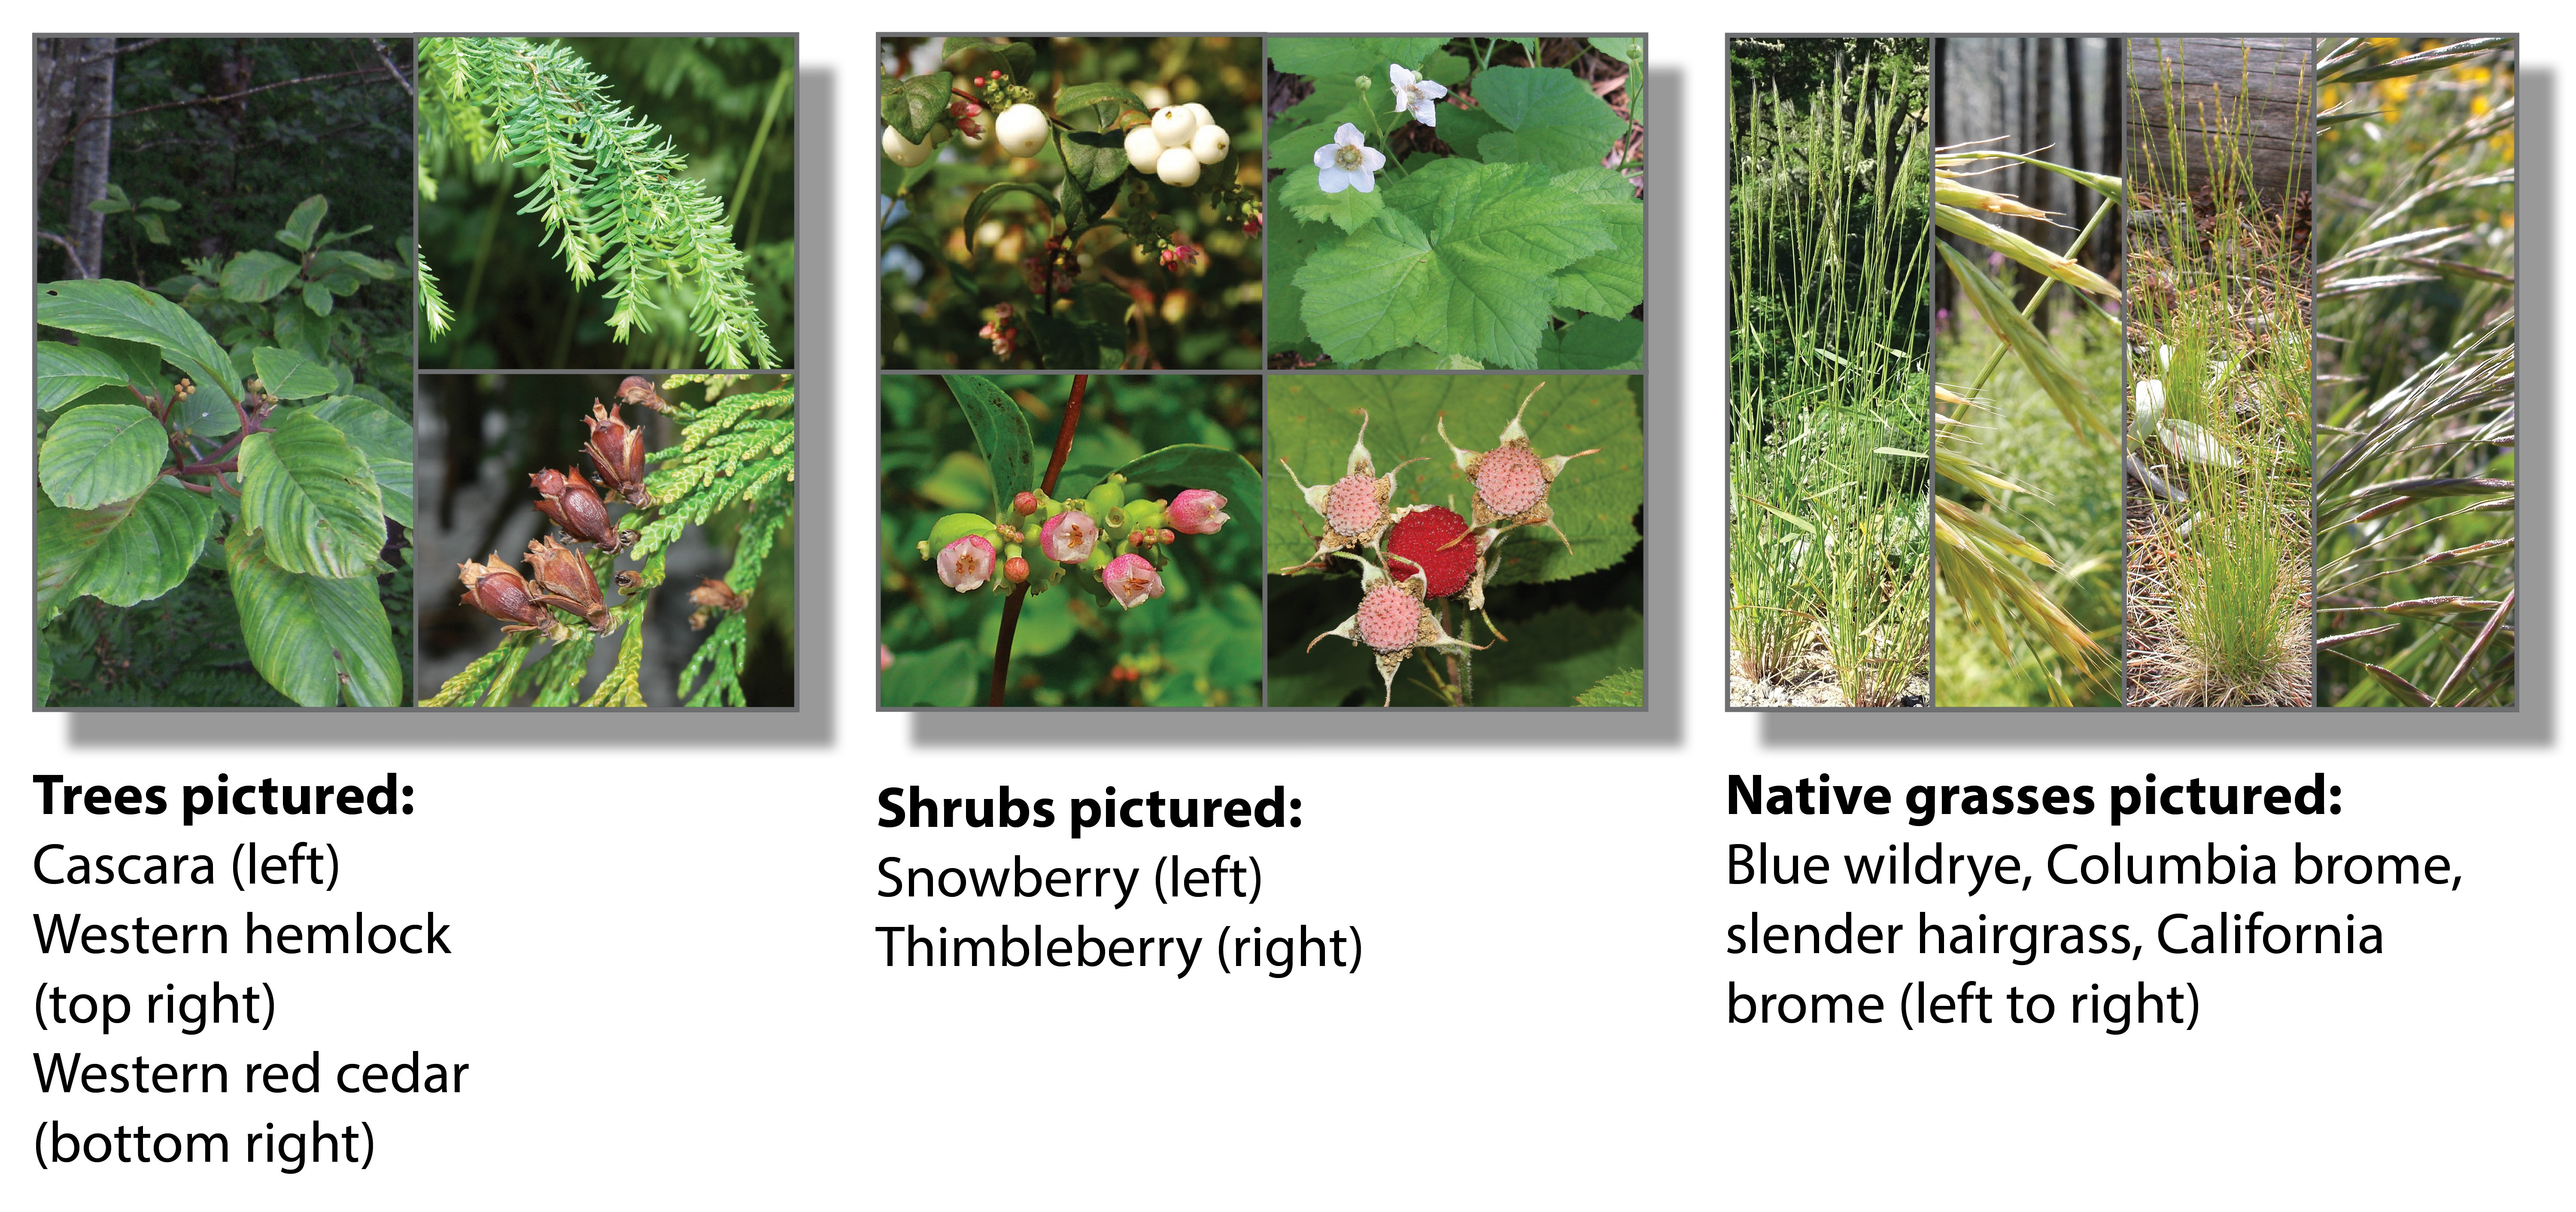 Photos of native plants to be installed: Cascara, Western hemlock, Western red cedar, snowberry, thimbleberry, blue wildrye, Columbia brome, California brome, slender hairgrass